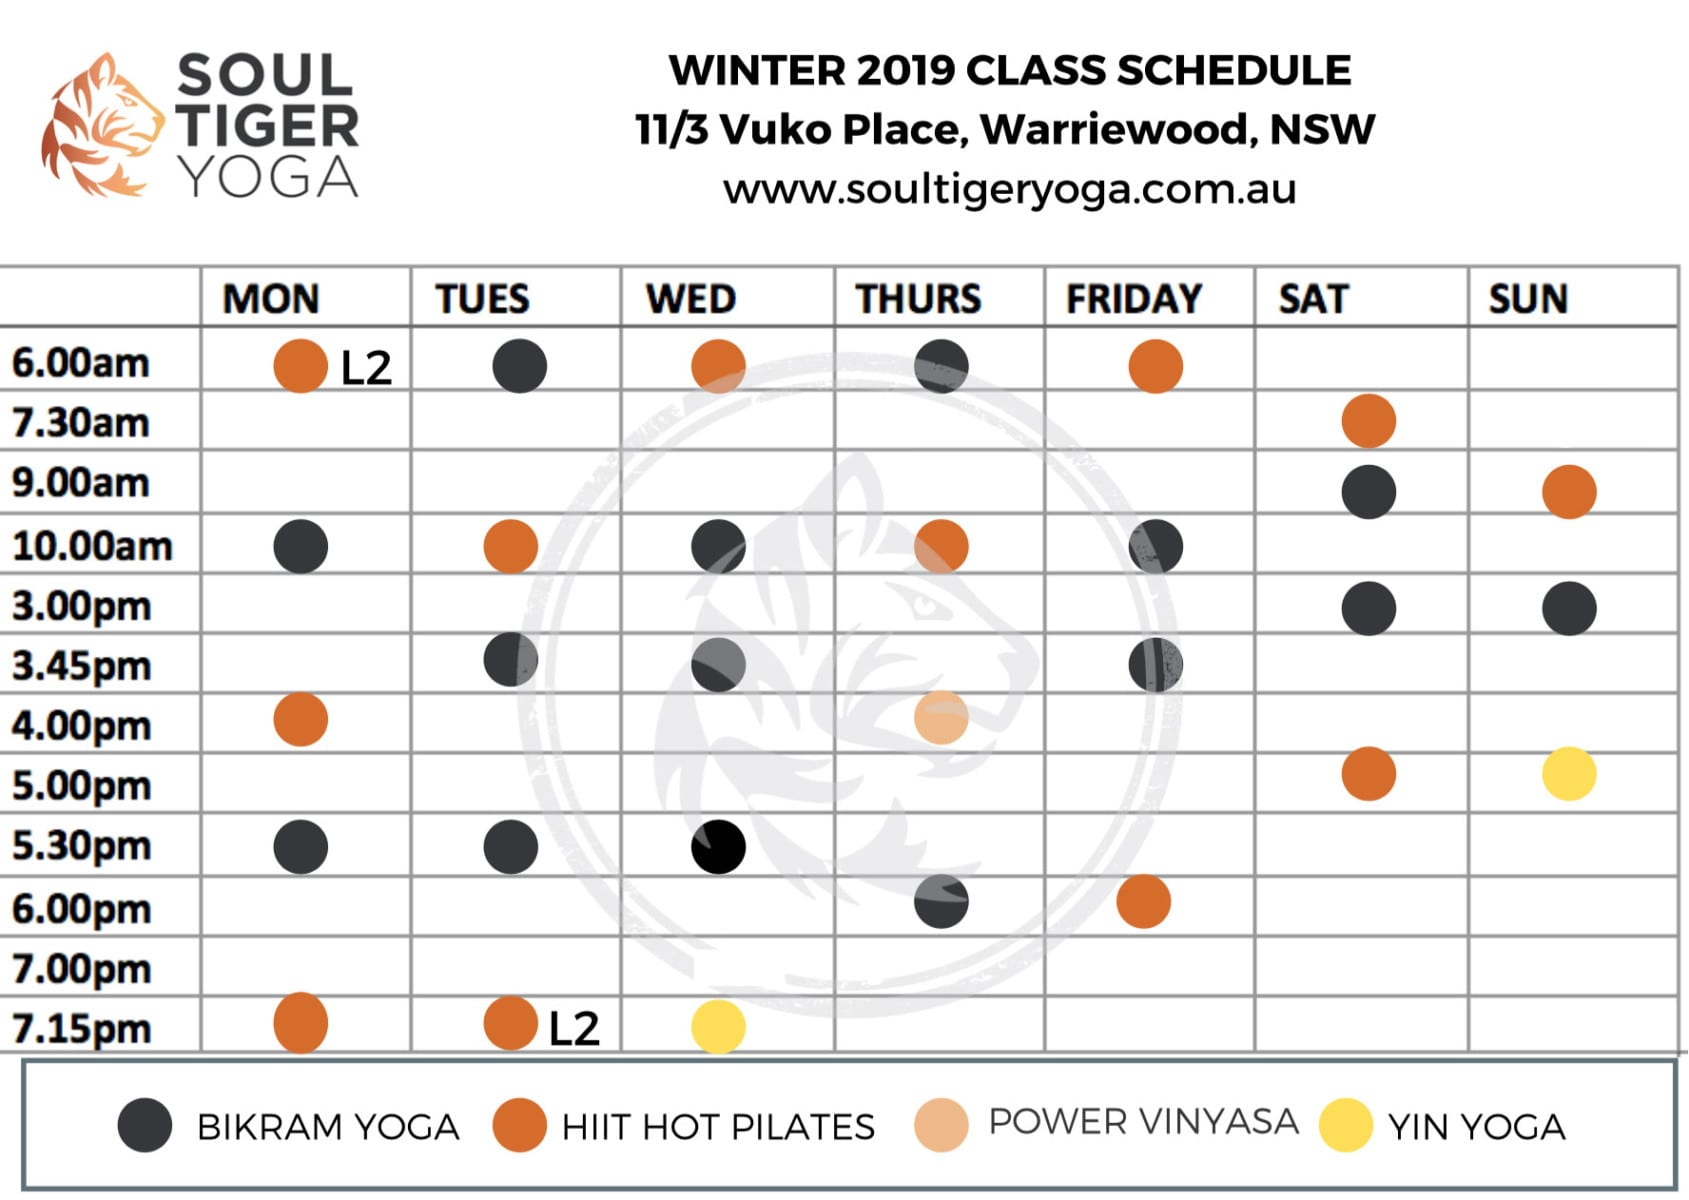 Soul Tiger Yoga Class Timetable - Northern Beaches Hot yoga and Pilates